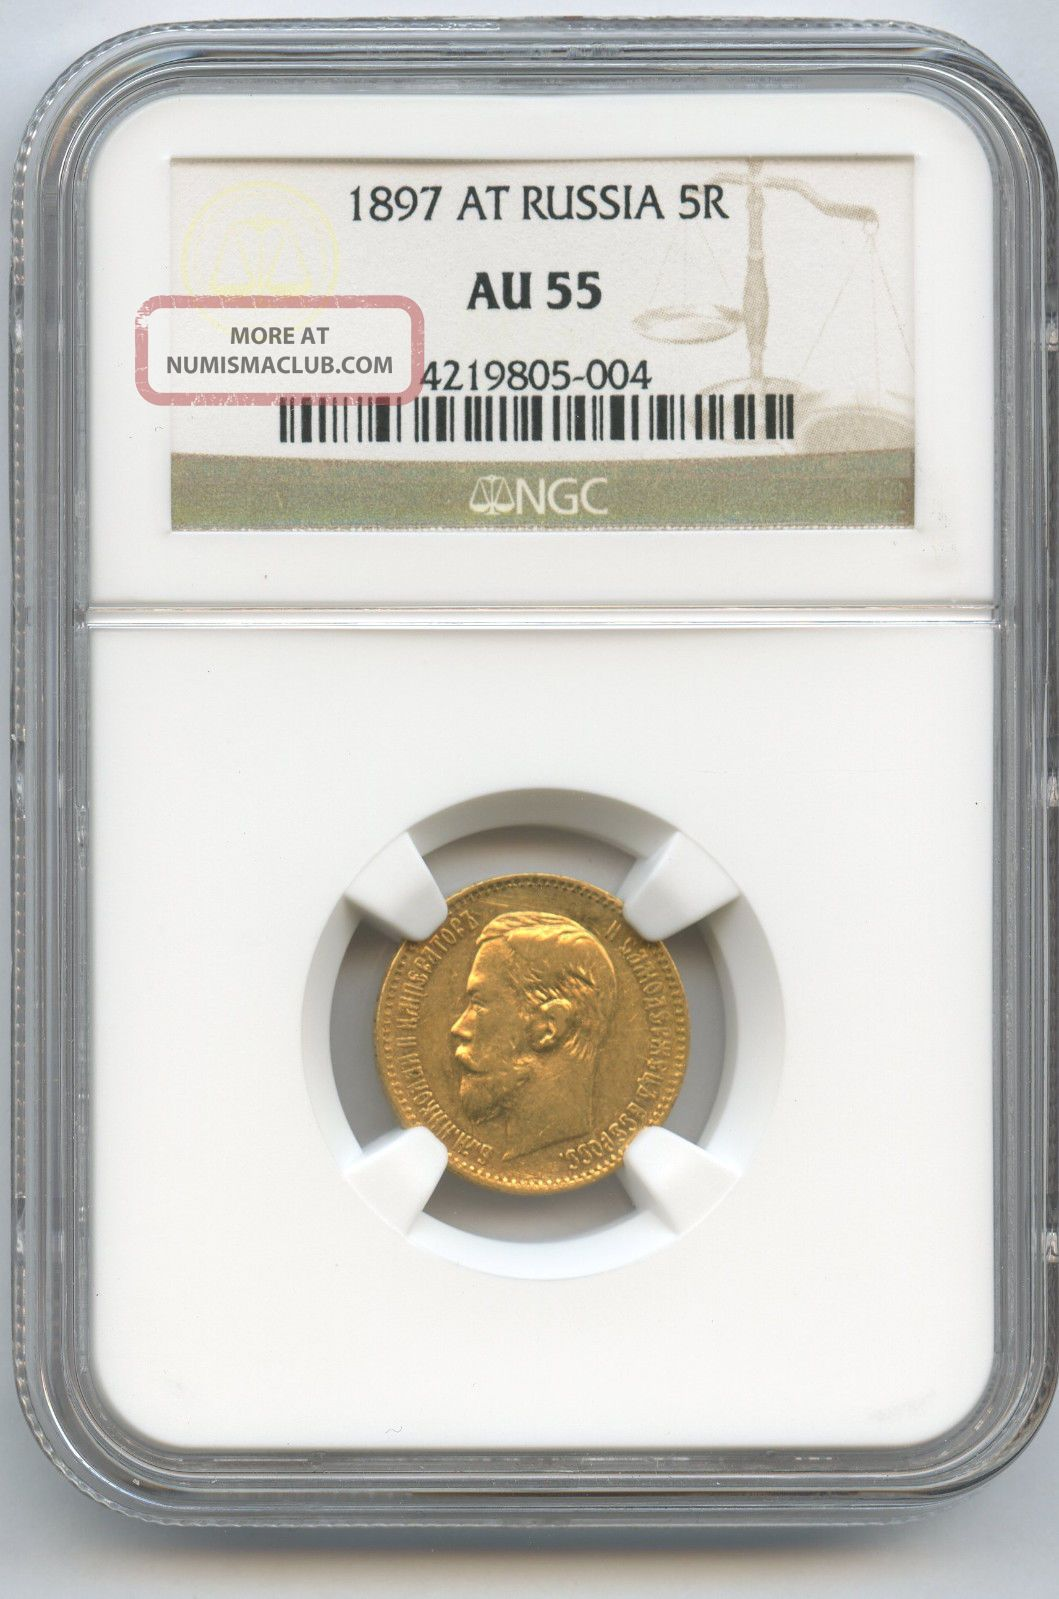 1897 Gold Russia At 5 Rouble Coin Ngc Au 55 With Plenty Of Lustre Coins: World photo